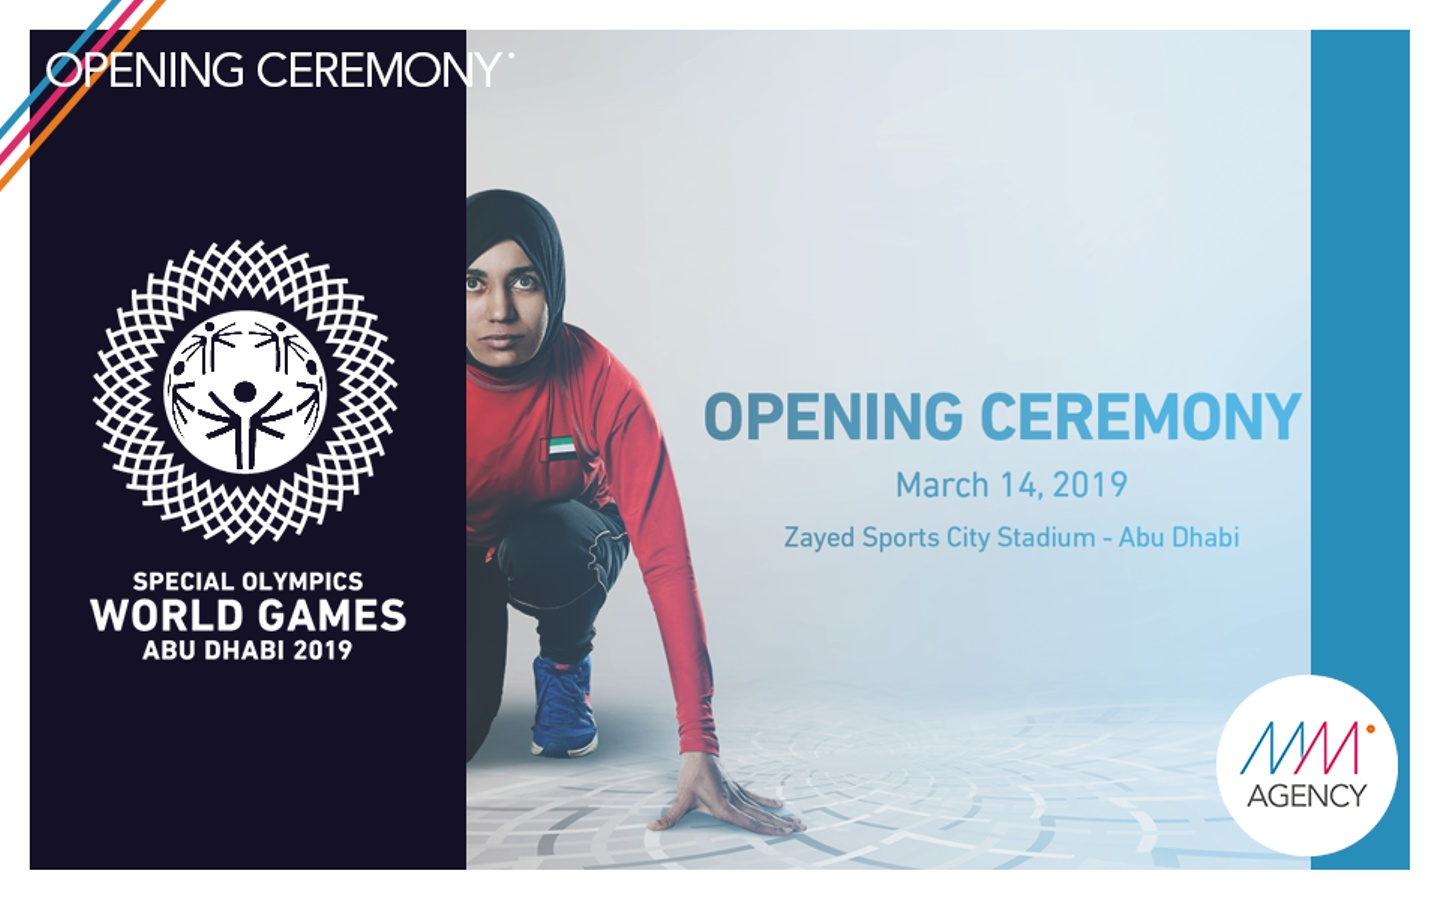 #sportsceremony | Special Olympics World Games x Opening Ceremony